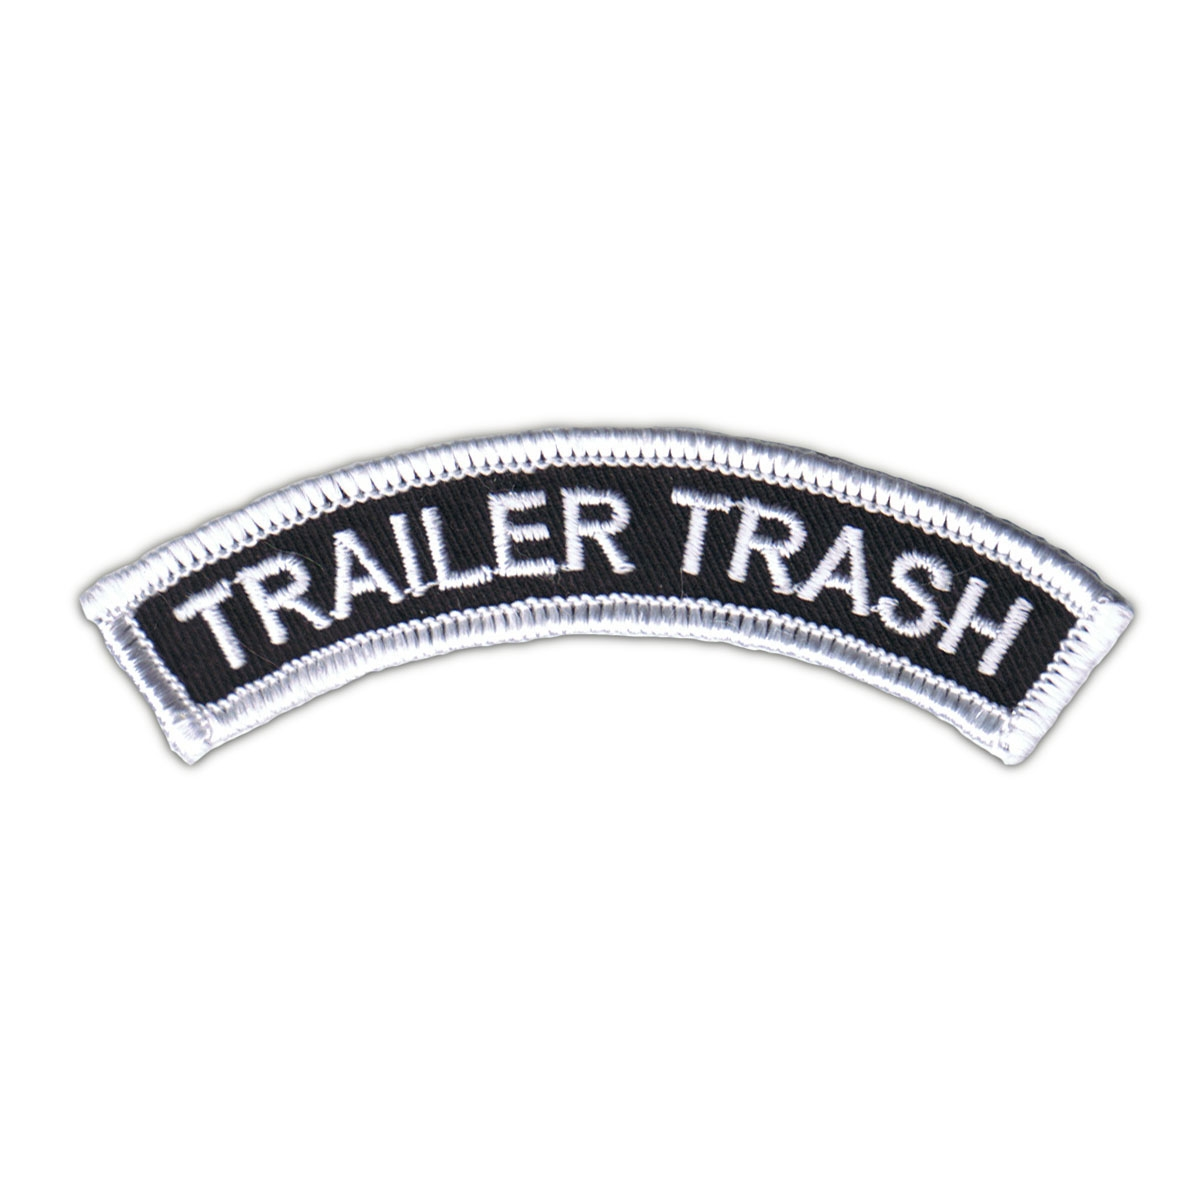 Trailer Trash Patch Iron on Black and White Name Tag